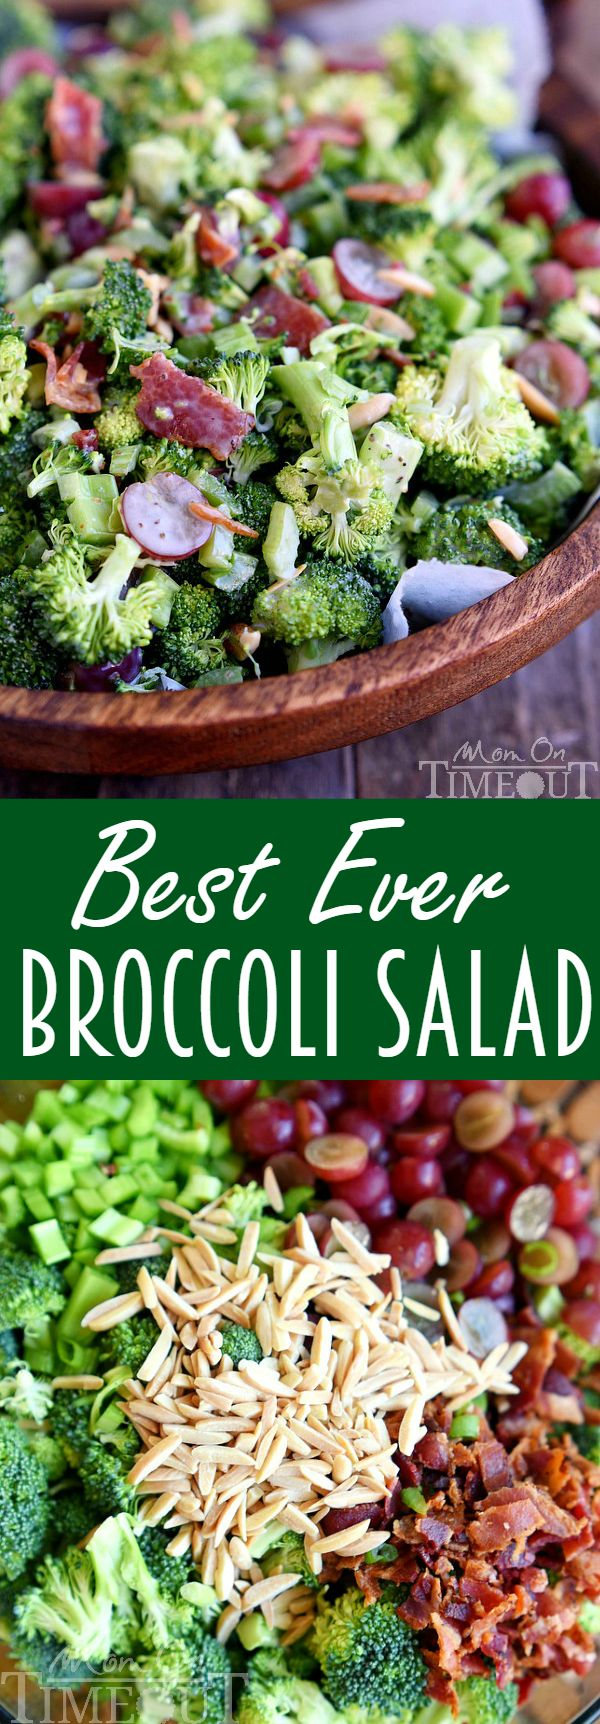 Dont believe me? Just try it! This Best Ever Broccoli Salad recipe is bursting with flavor! Packed full of broccoli, bacon, grapes, almonds and more - every bite is delicious! | MomOnTimeout.com